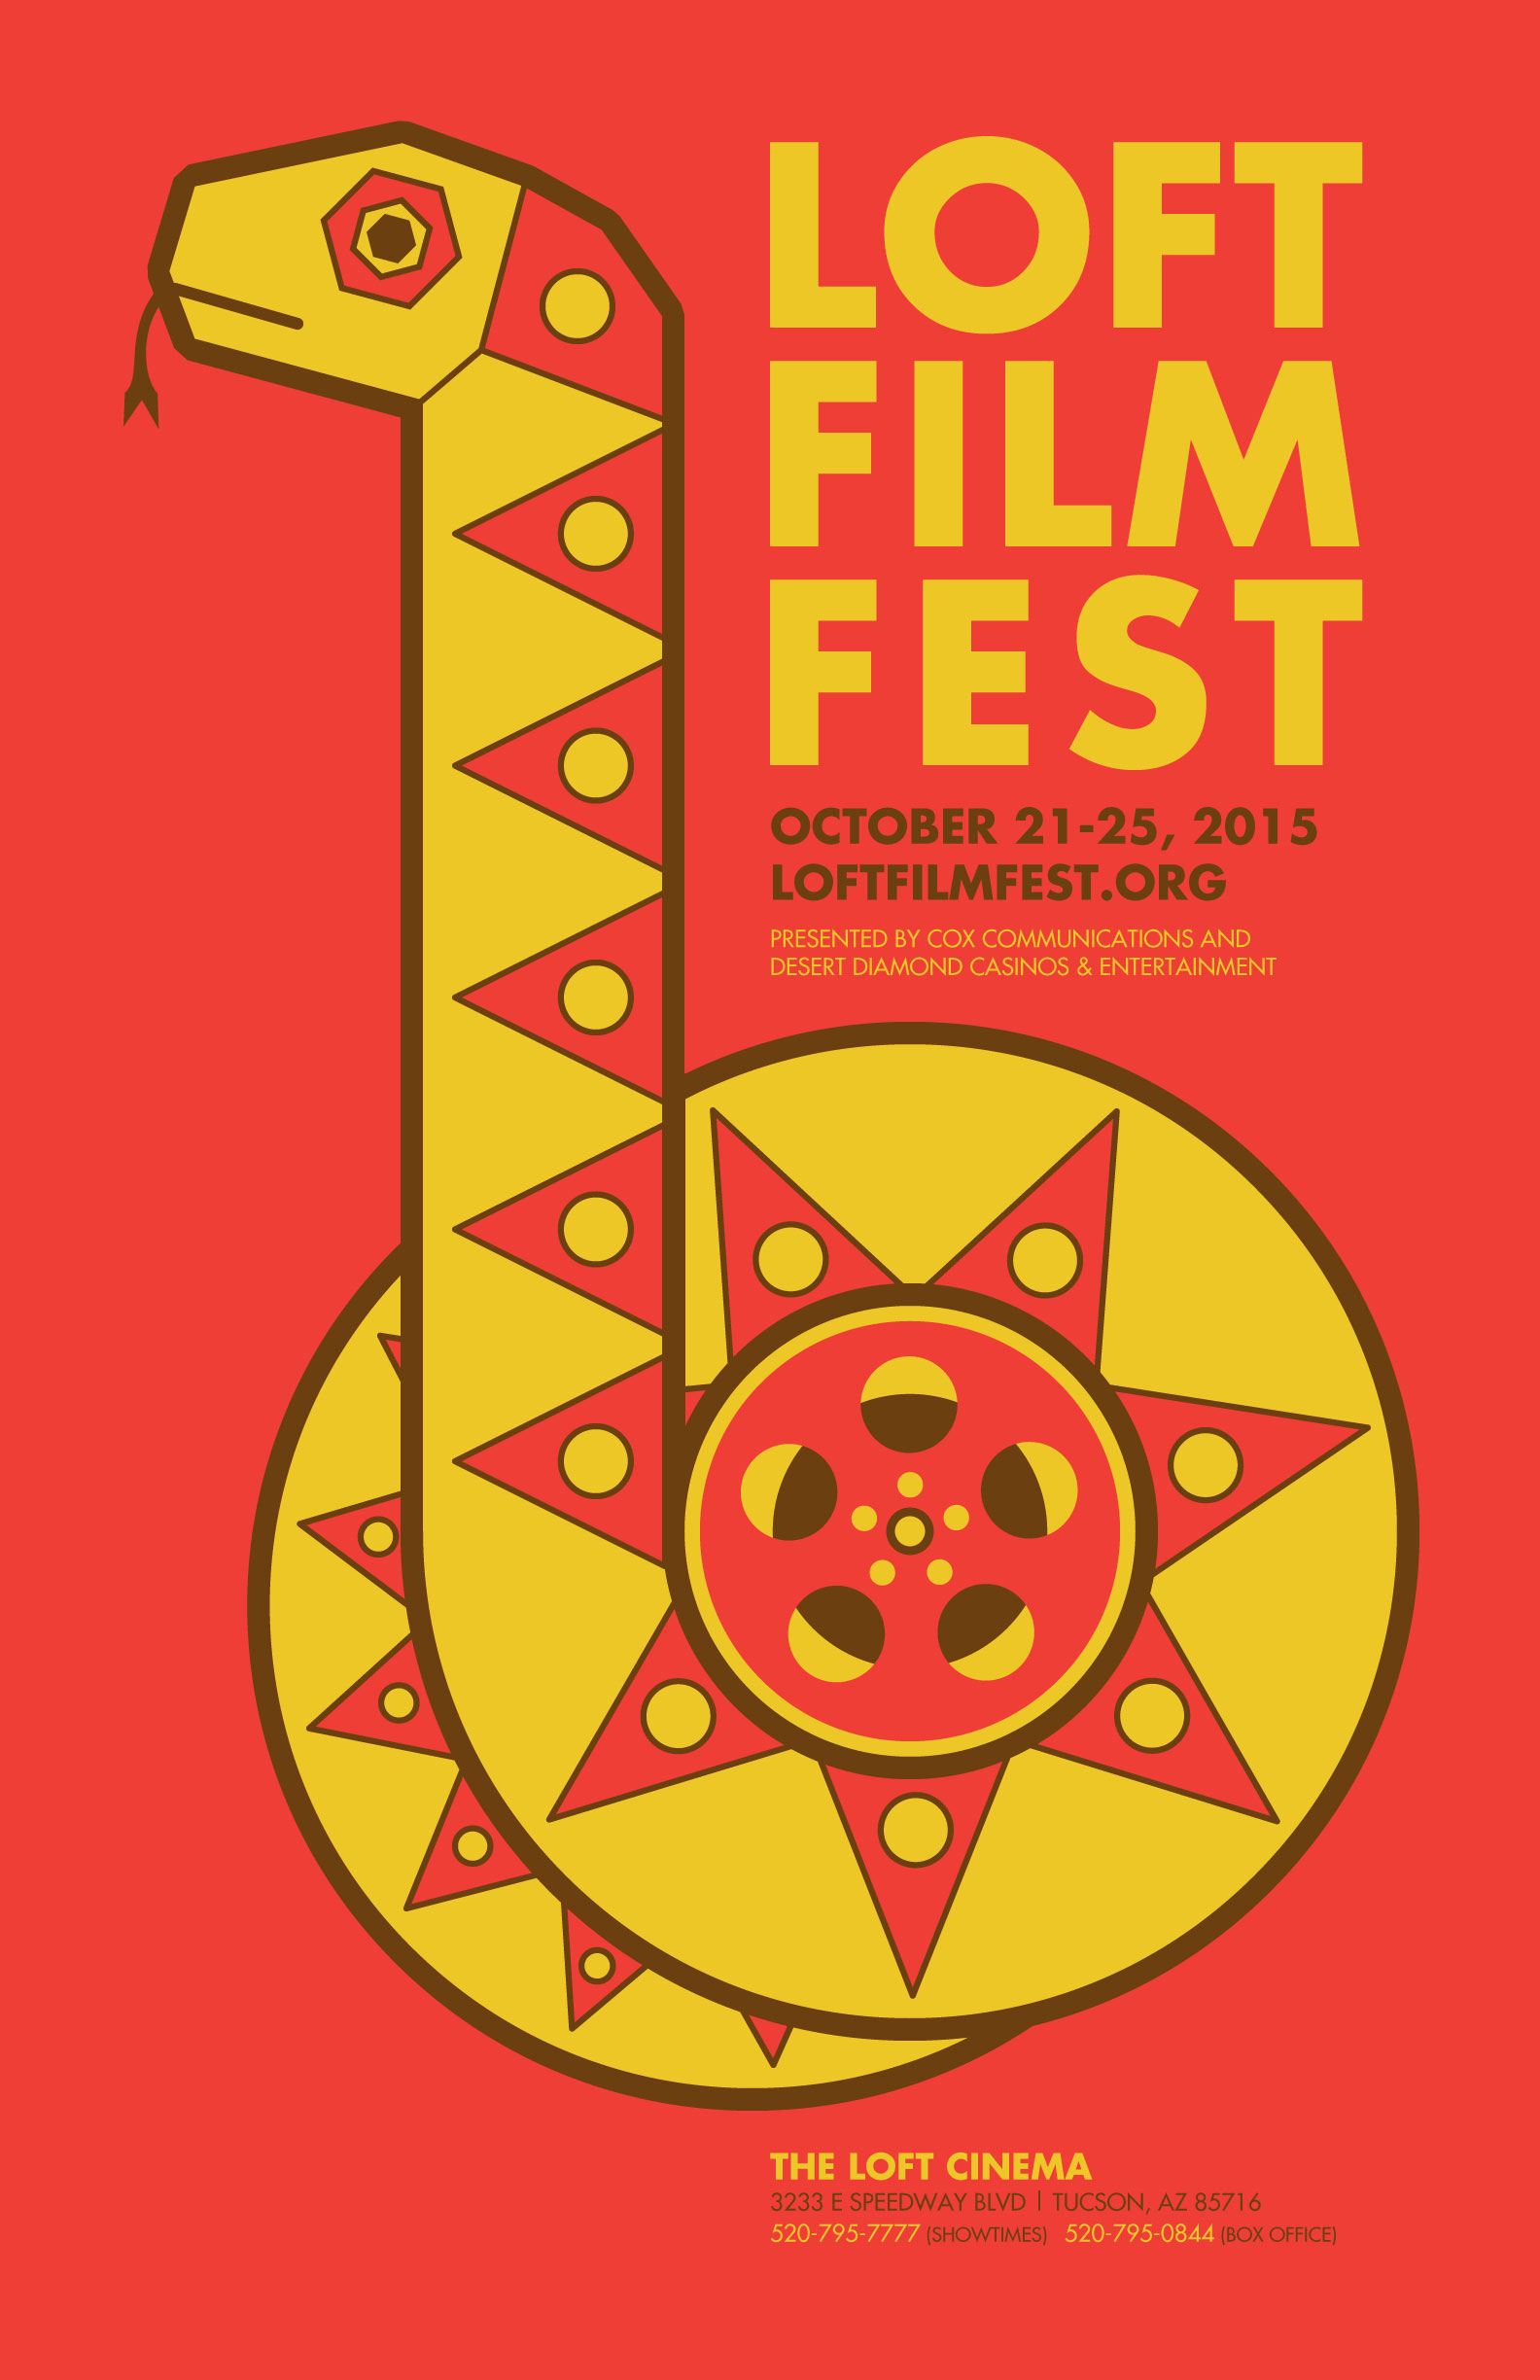 Loft Film Fest 2015 - Original Poster Design